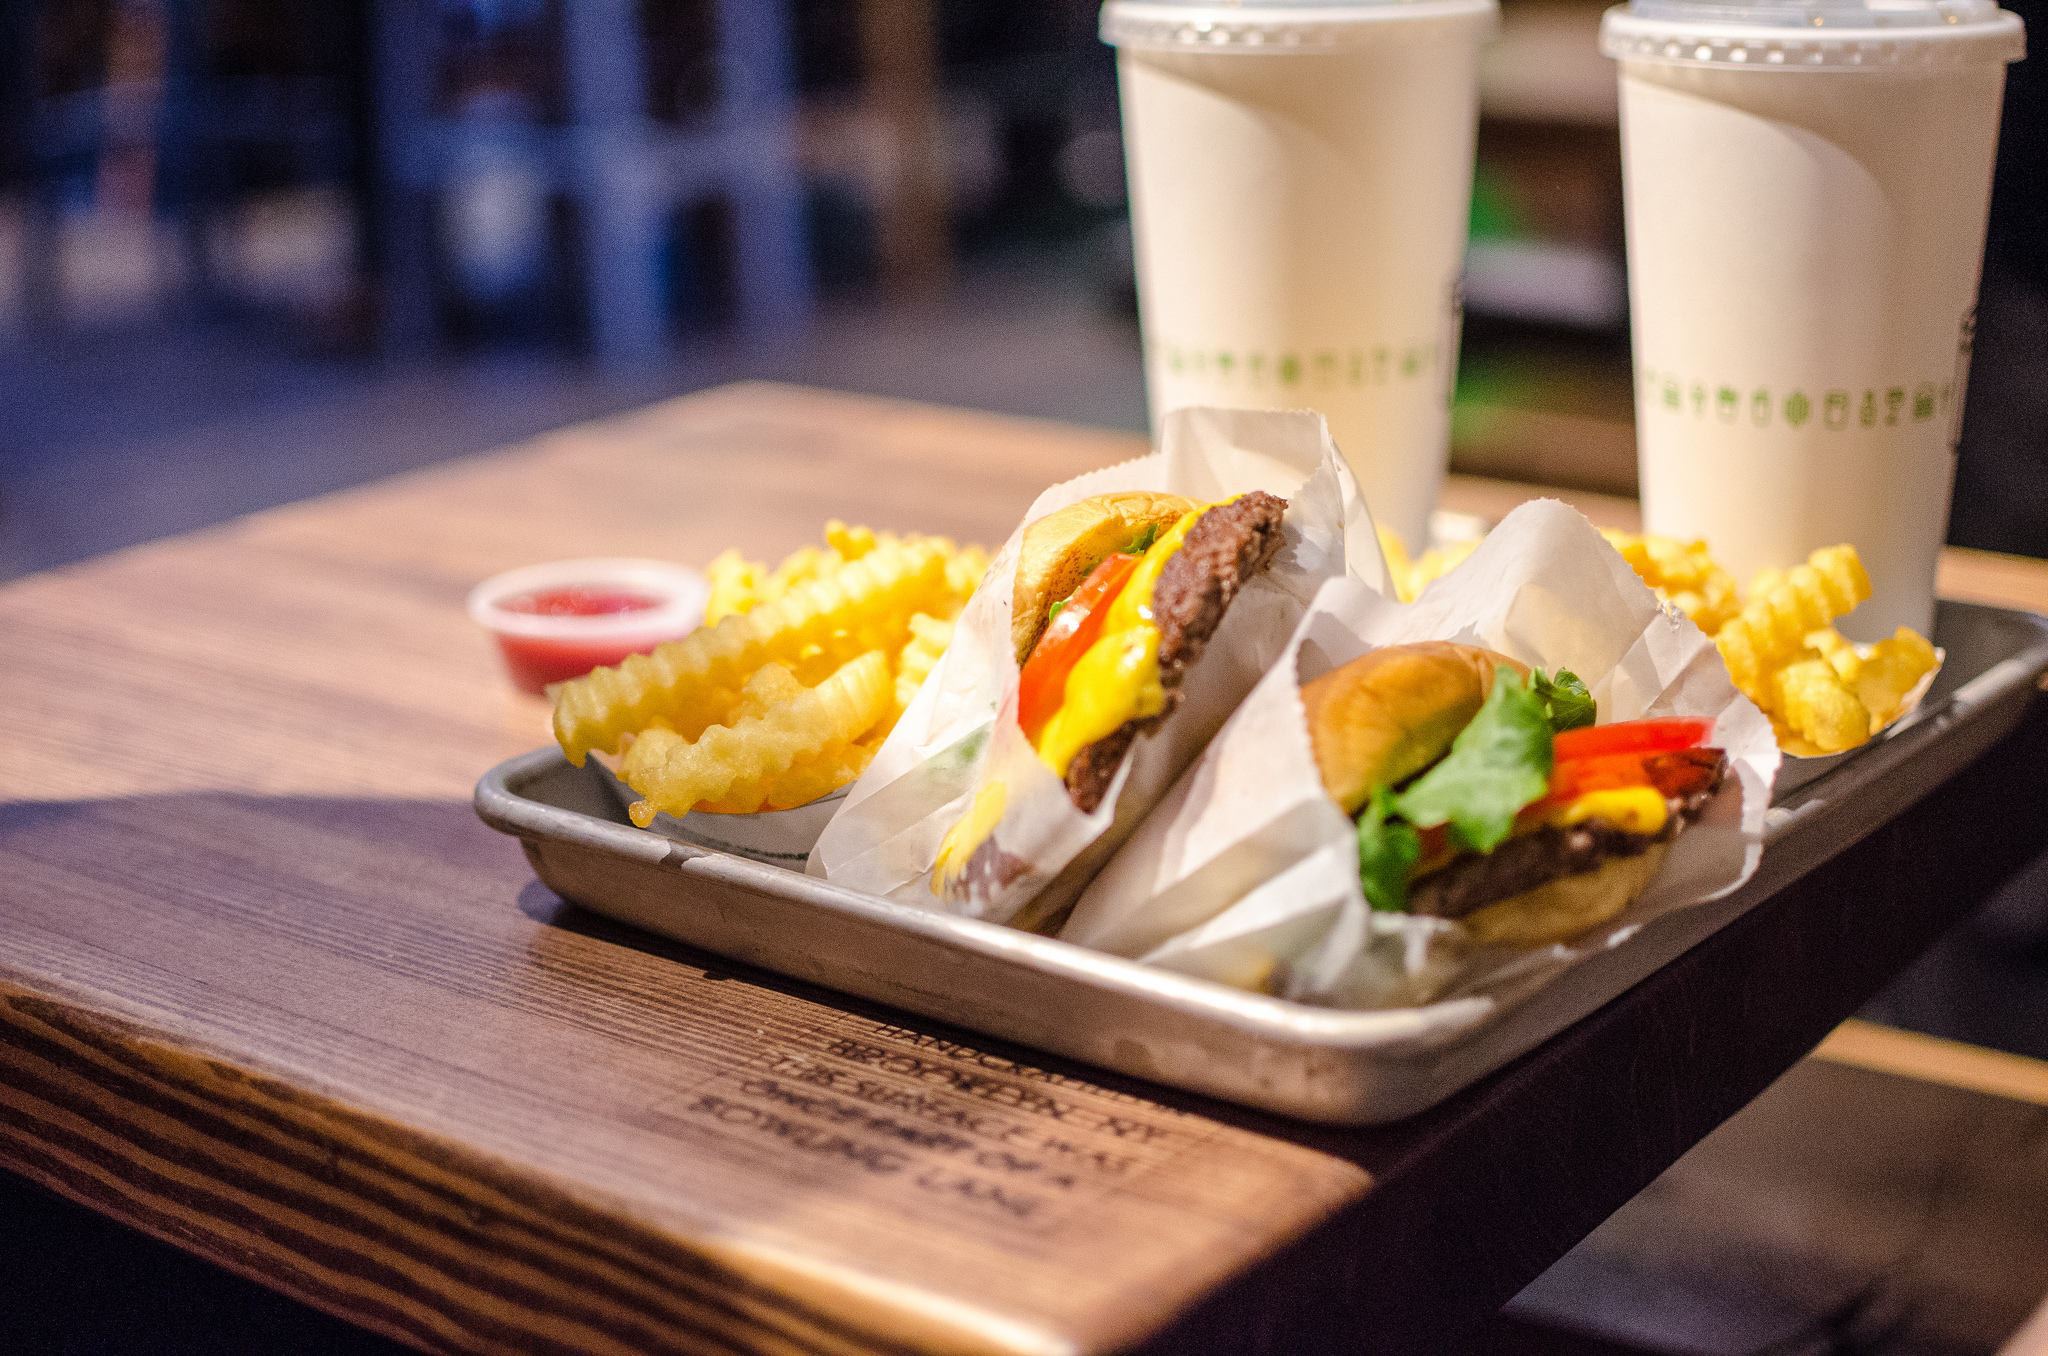 A meal at Shake Shack. (m01229/Flickr)